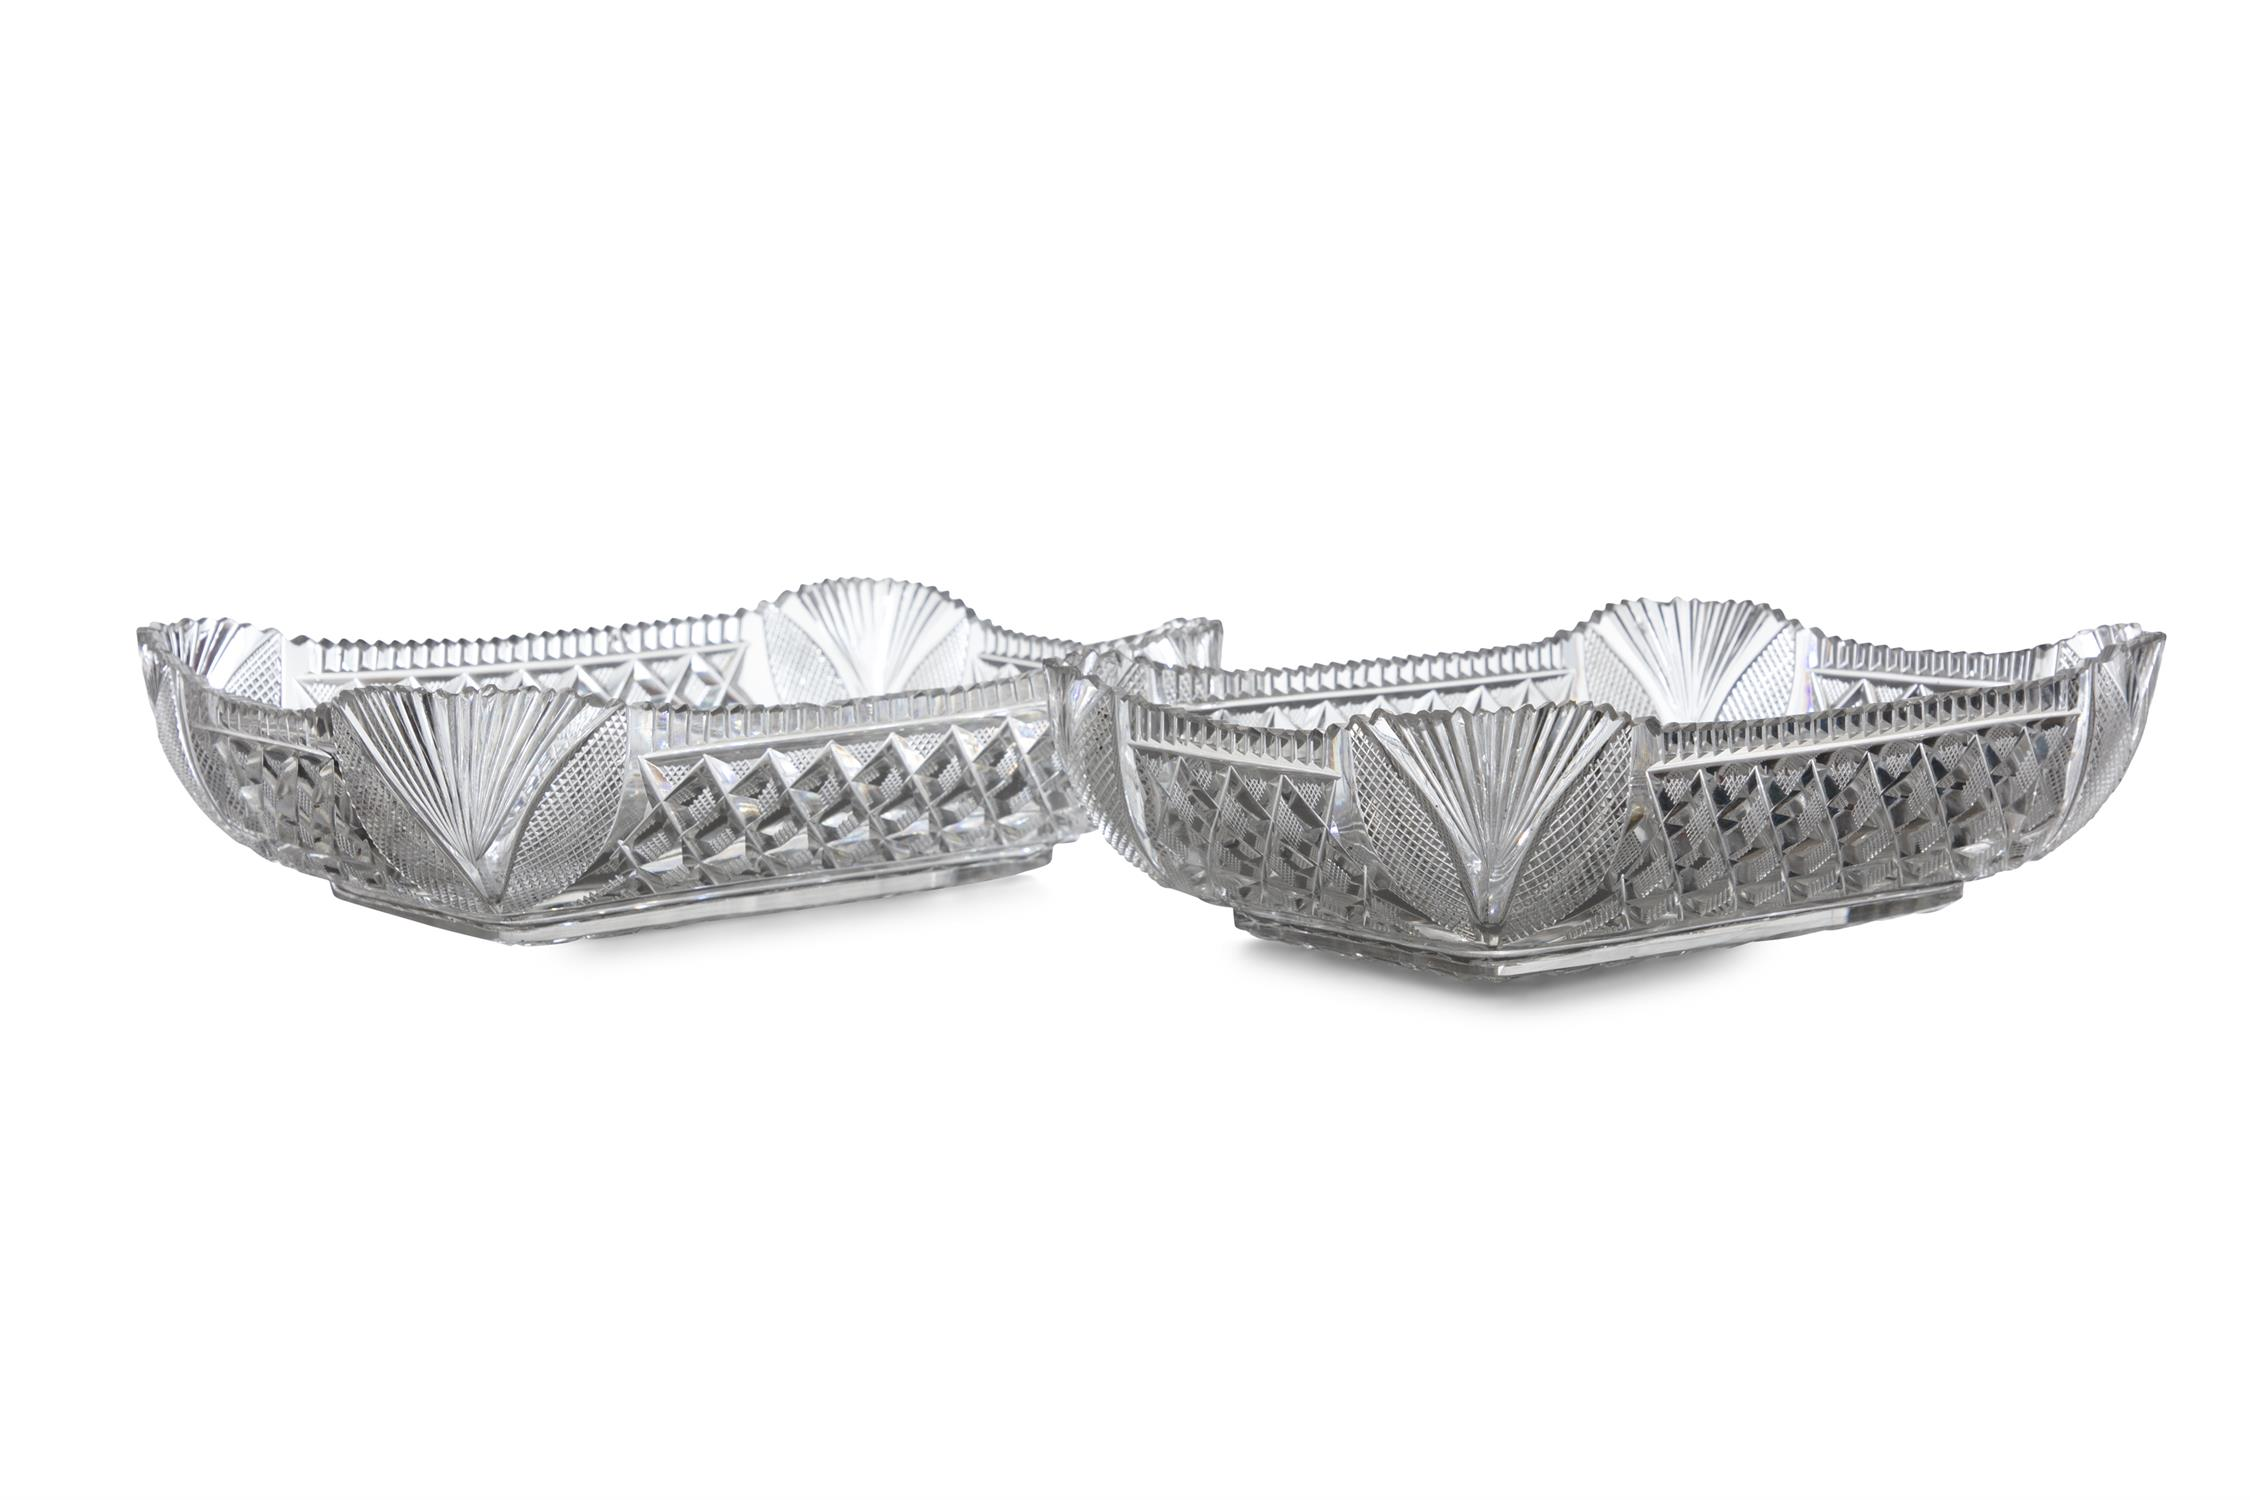 A PAIR OF IRISH CUT GLASS SERVING DISHES, c. 1900, each rectangular form with shell cut corner - Image 3 of 3